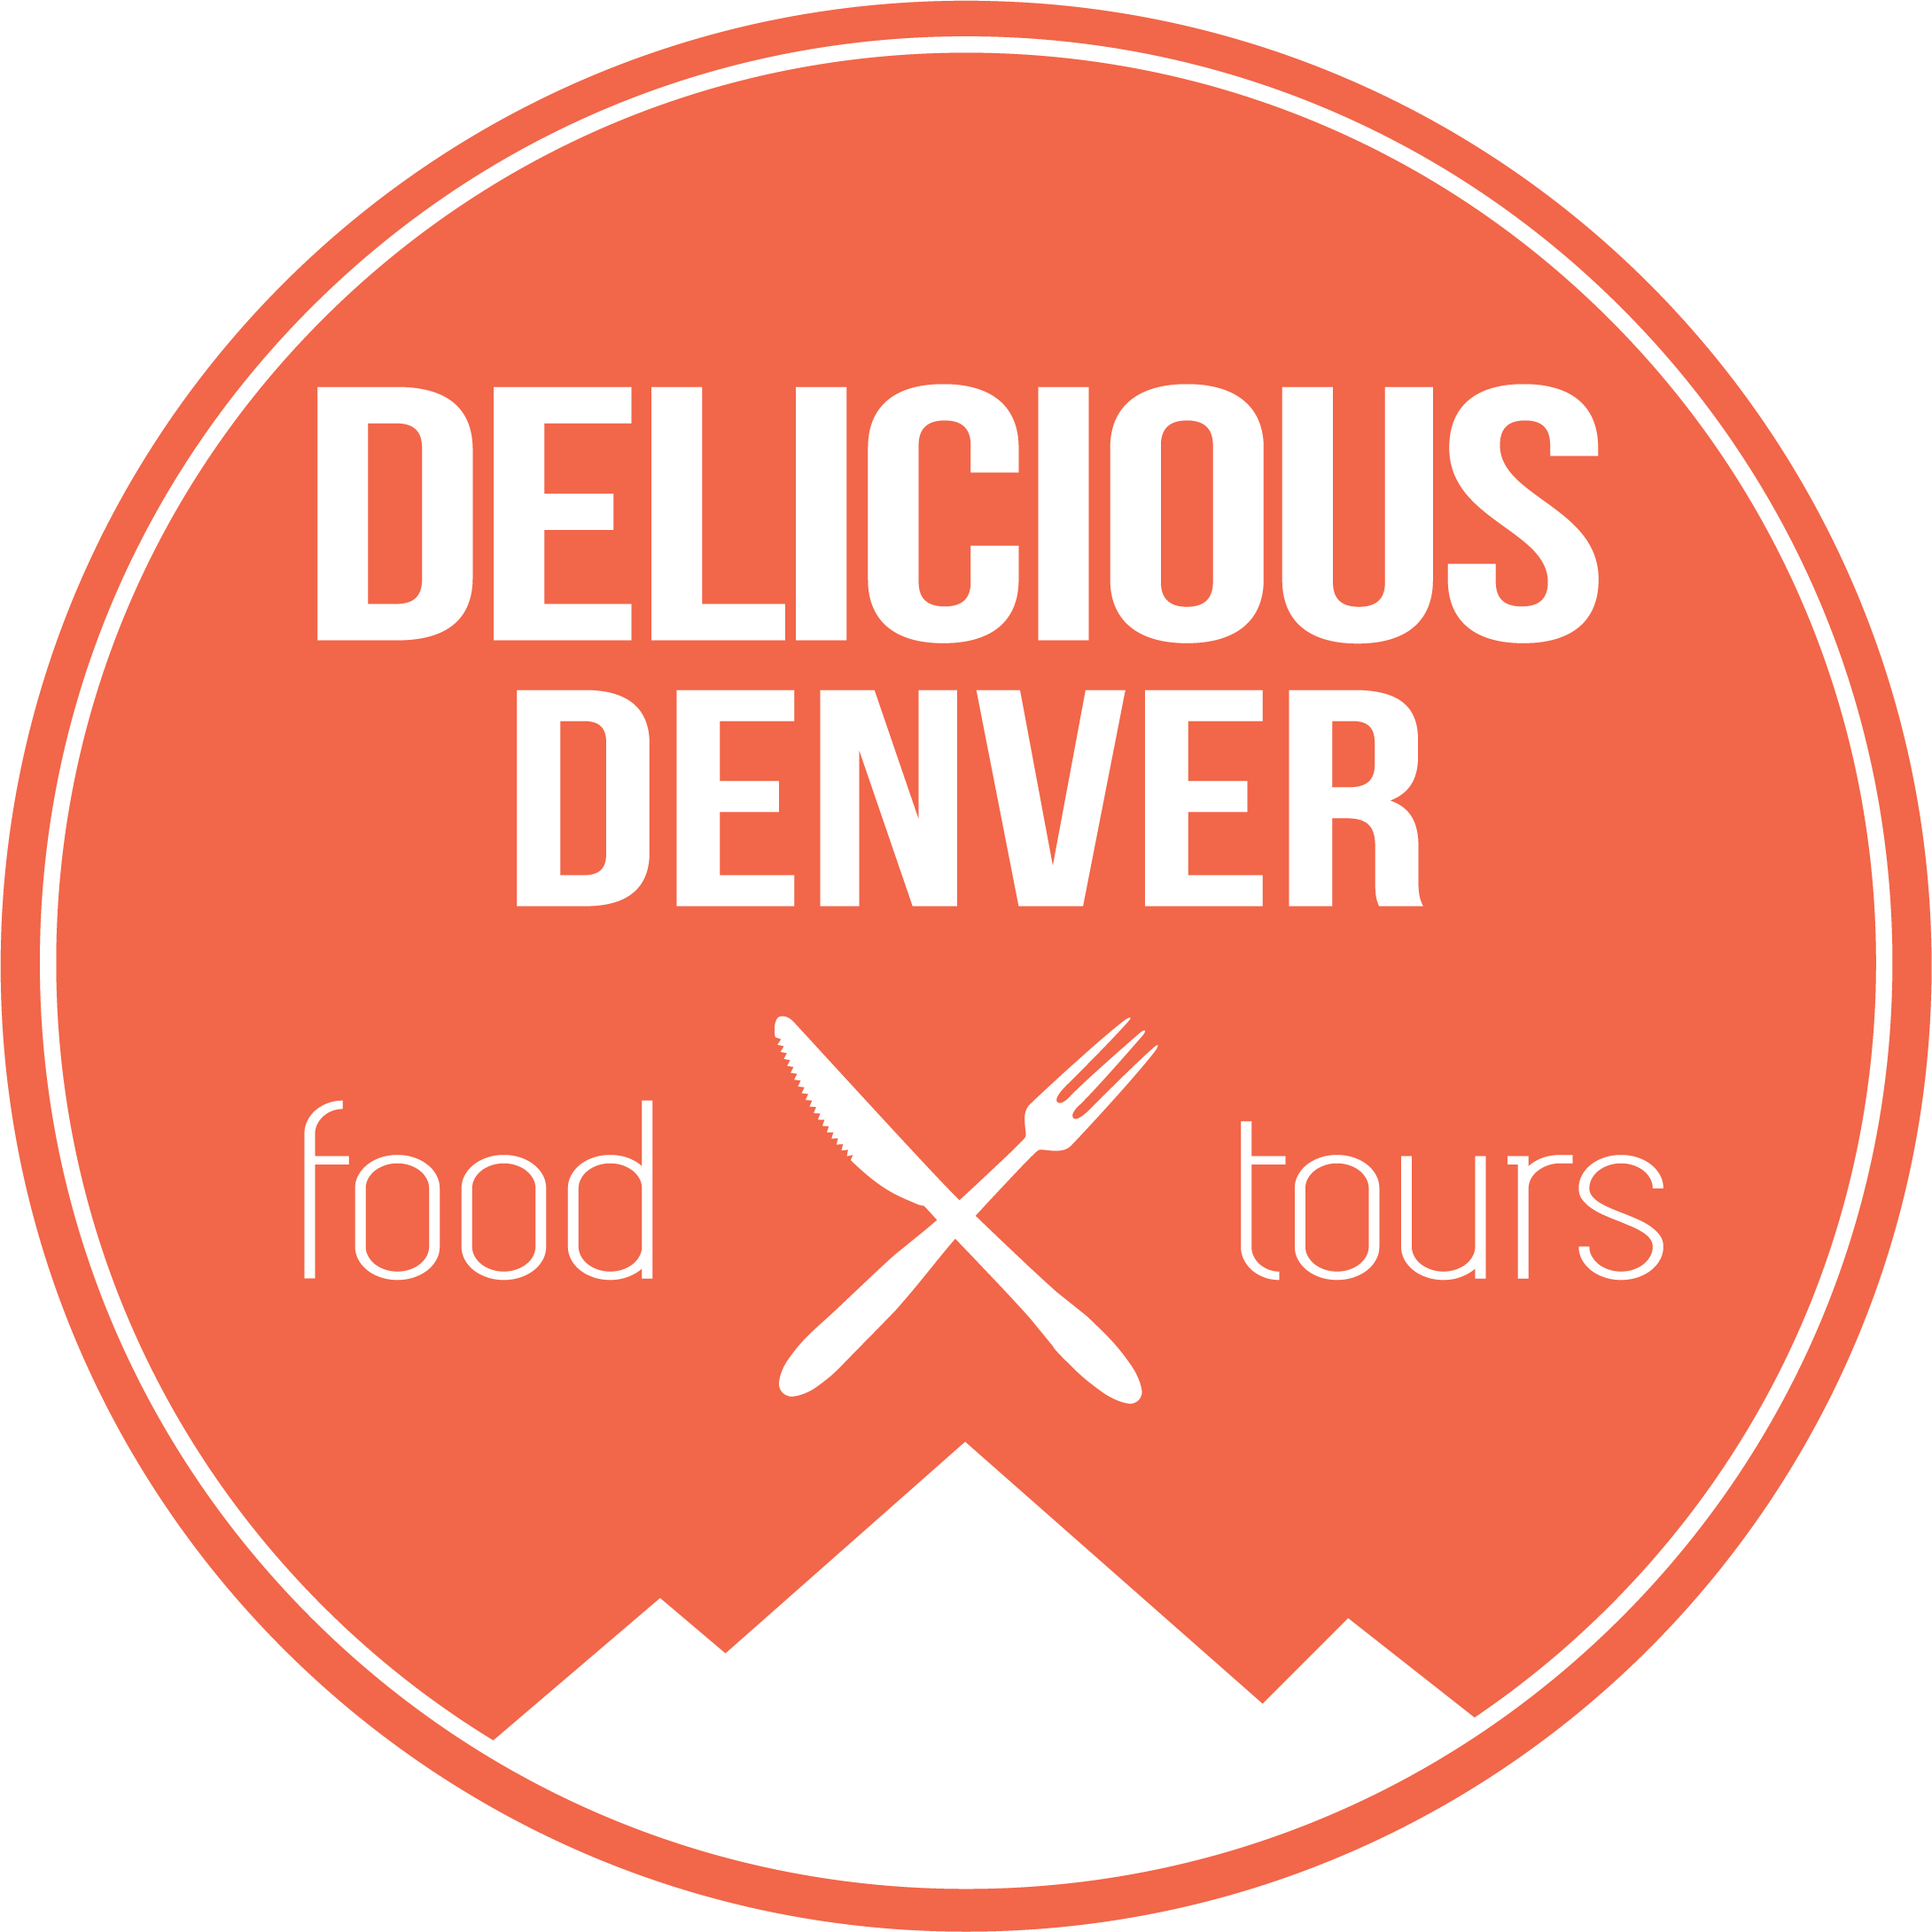 Image Courtesy of  Delicious Denver Food Tours